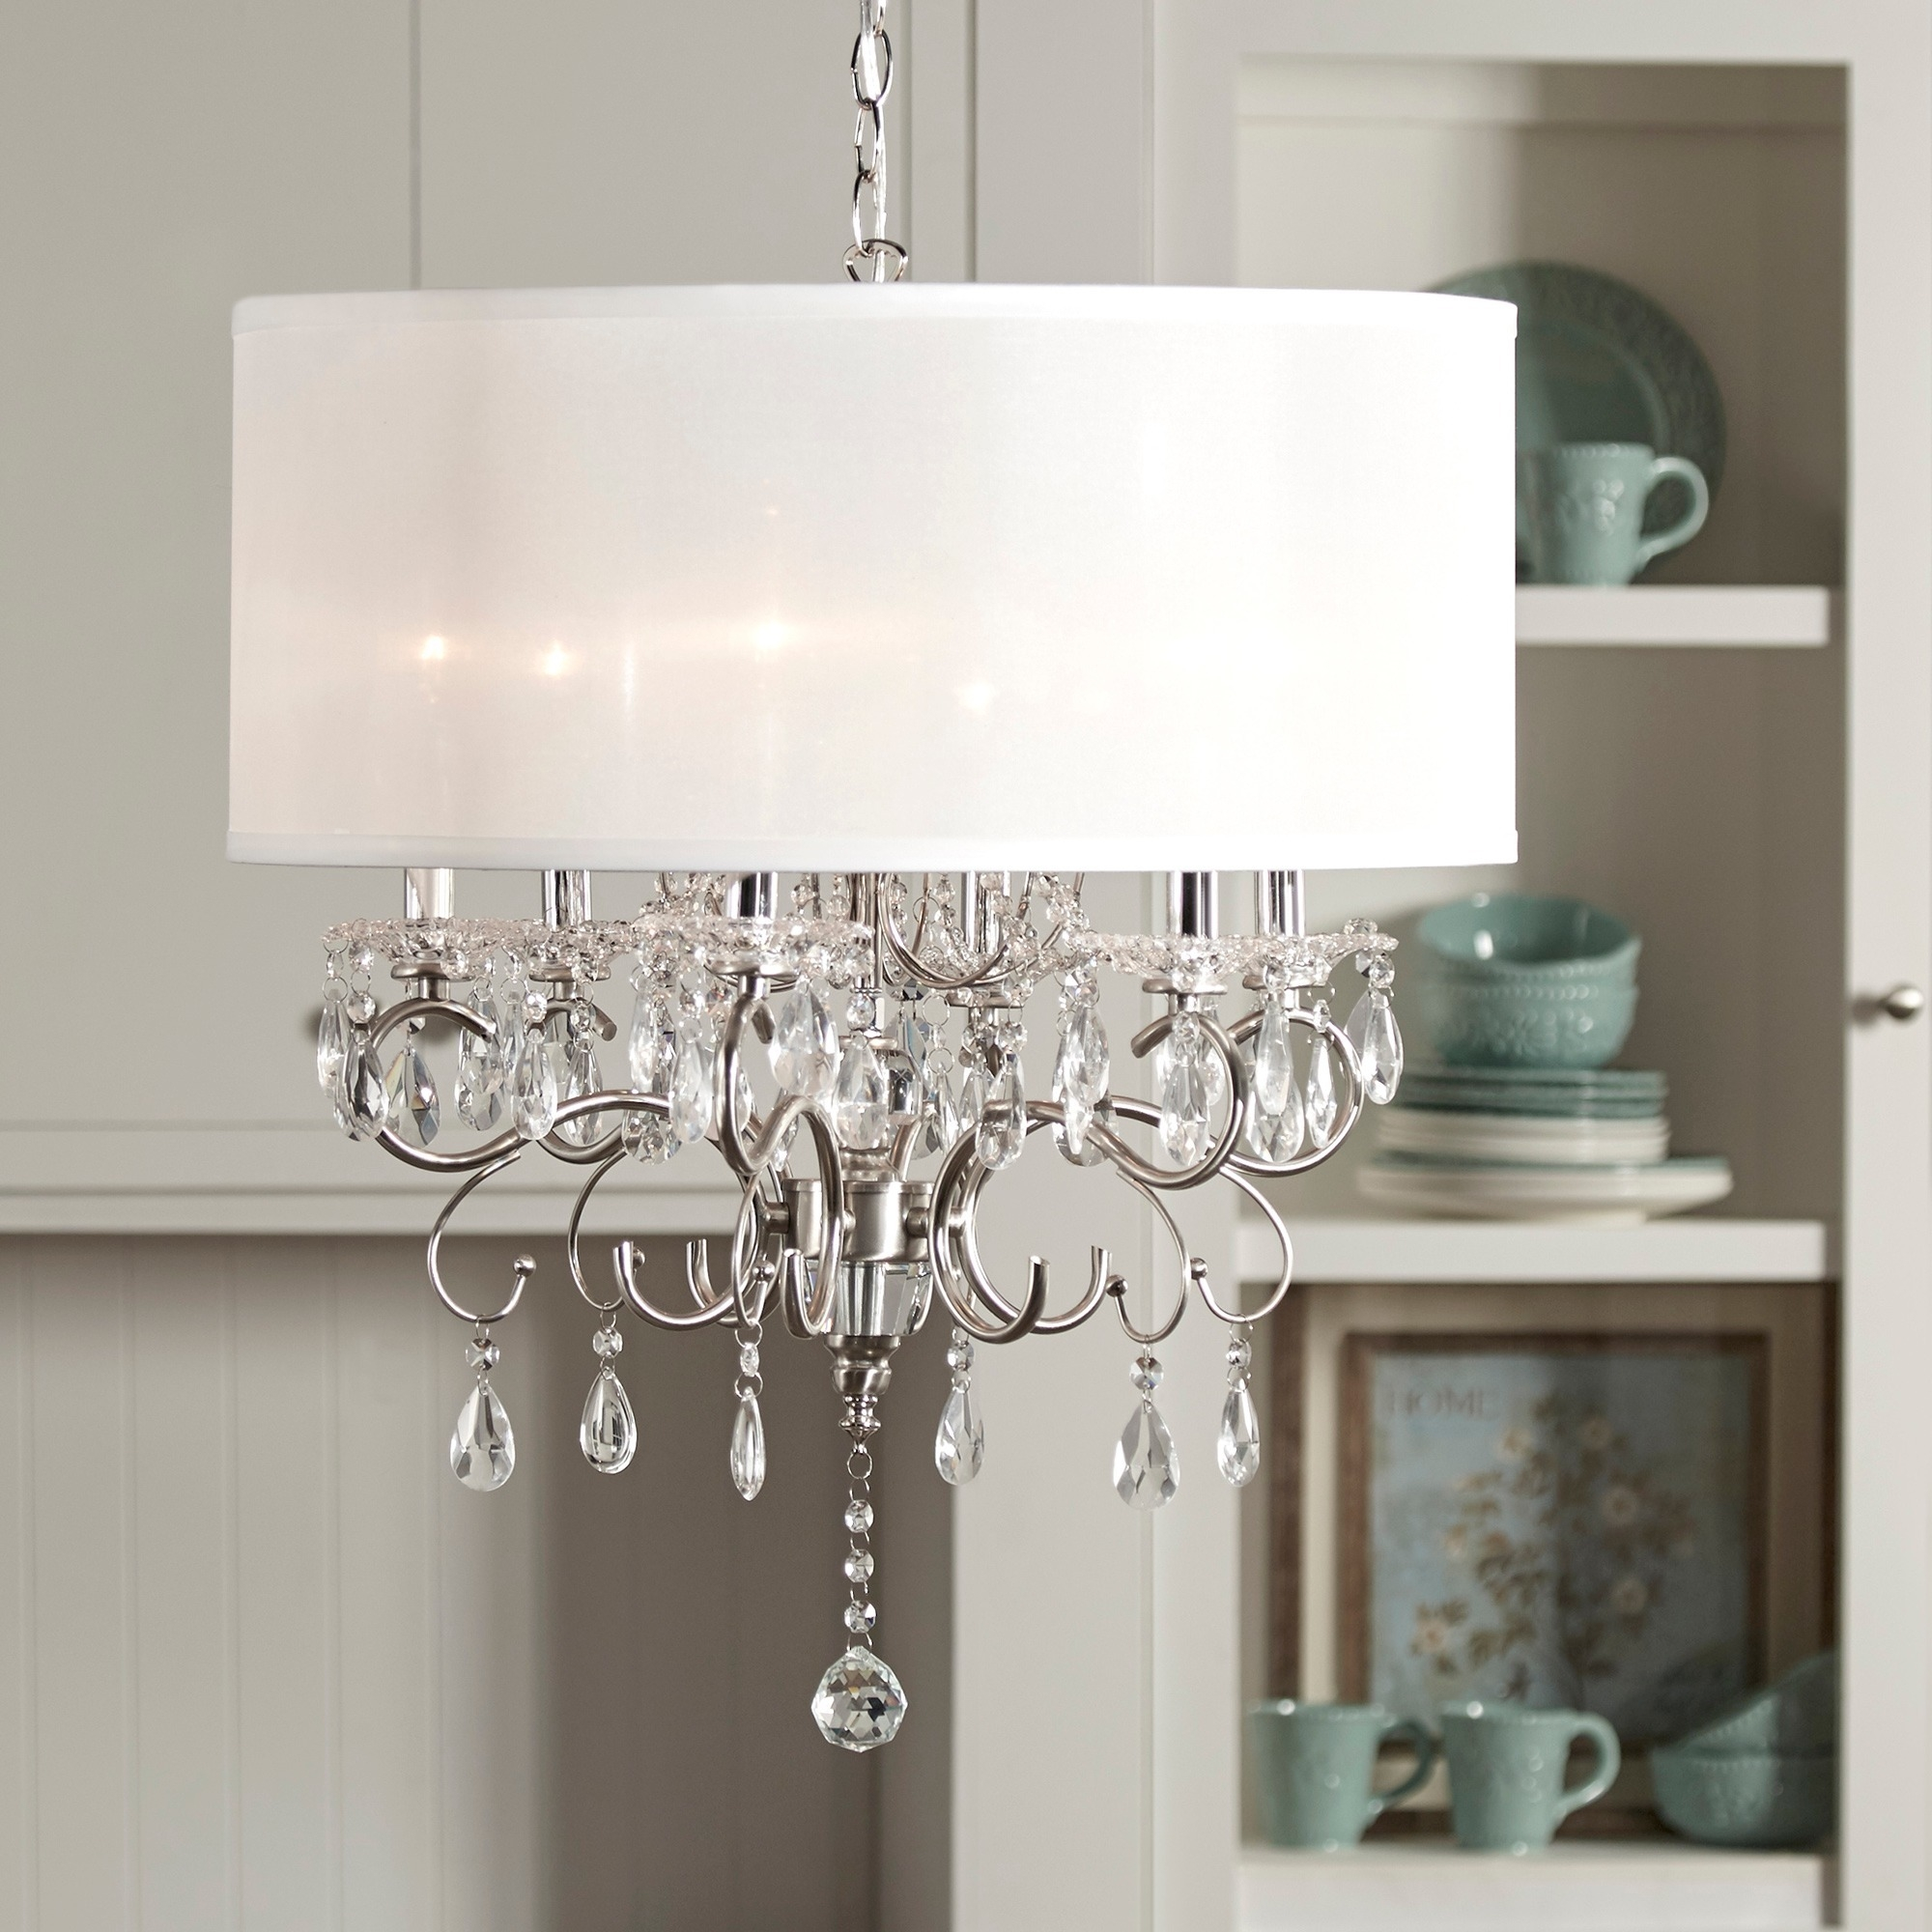 12 of Cream Crystal Chandelier